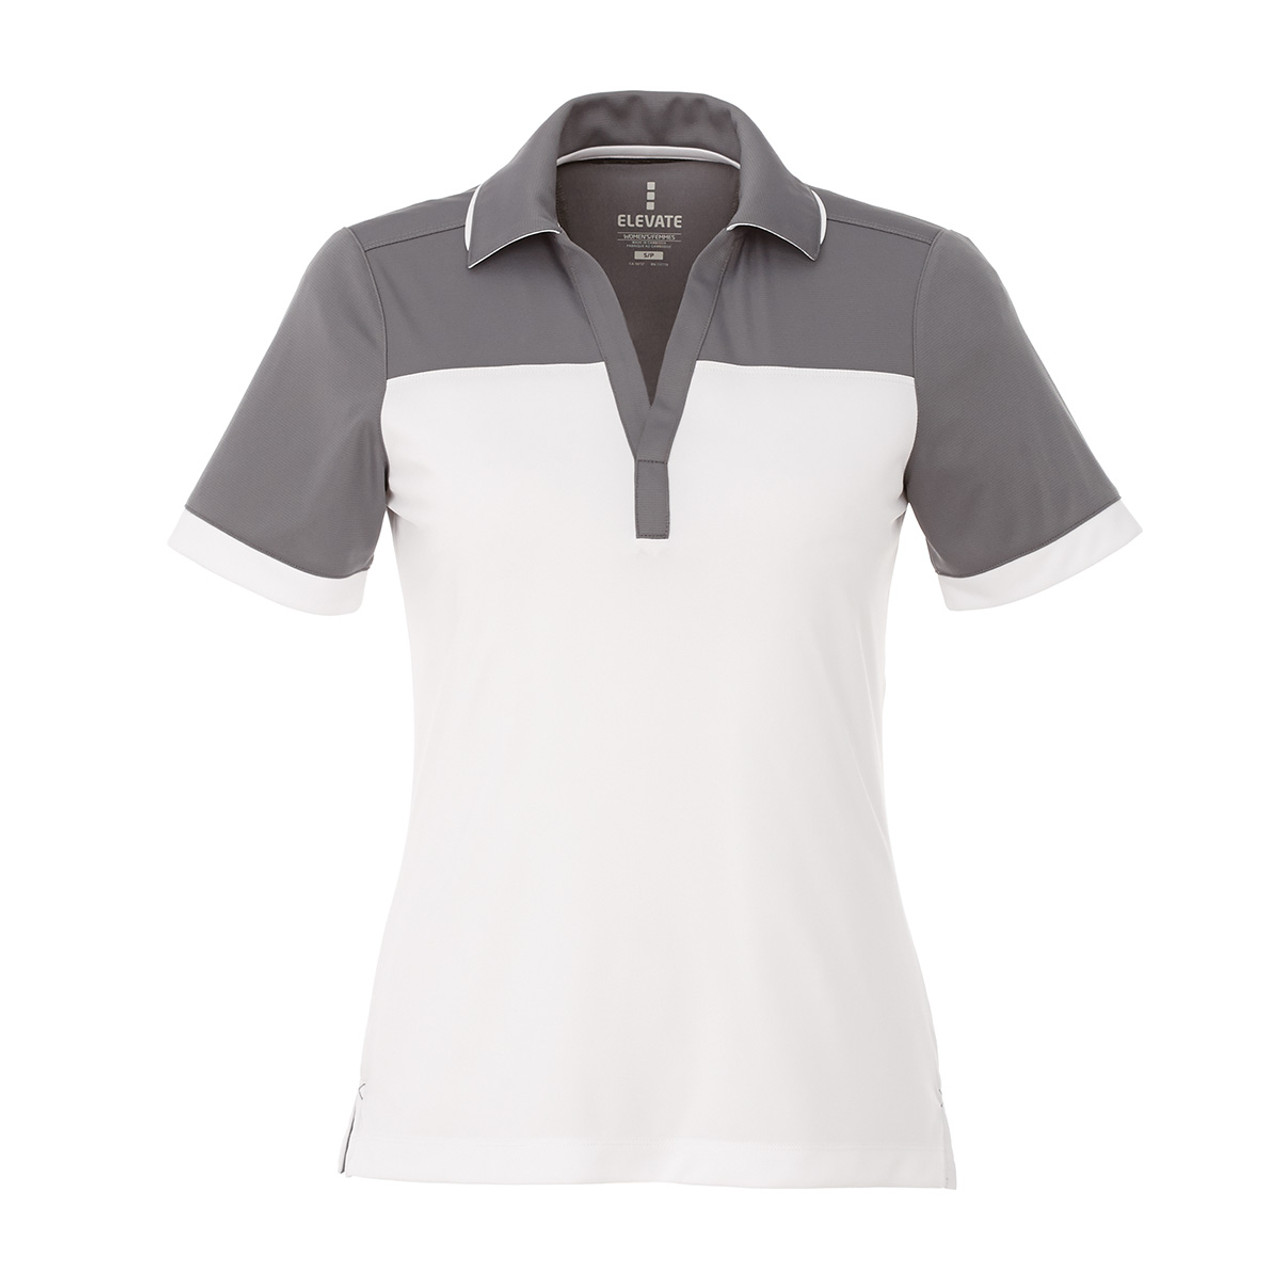 96308 Mack Women s Short Sleeve Polo Shirt · Steel Grey White - 96308 Mack Women s  Short Sleeve Polo ... df2b75c395